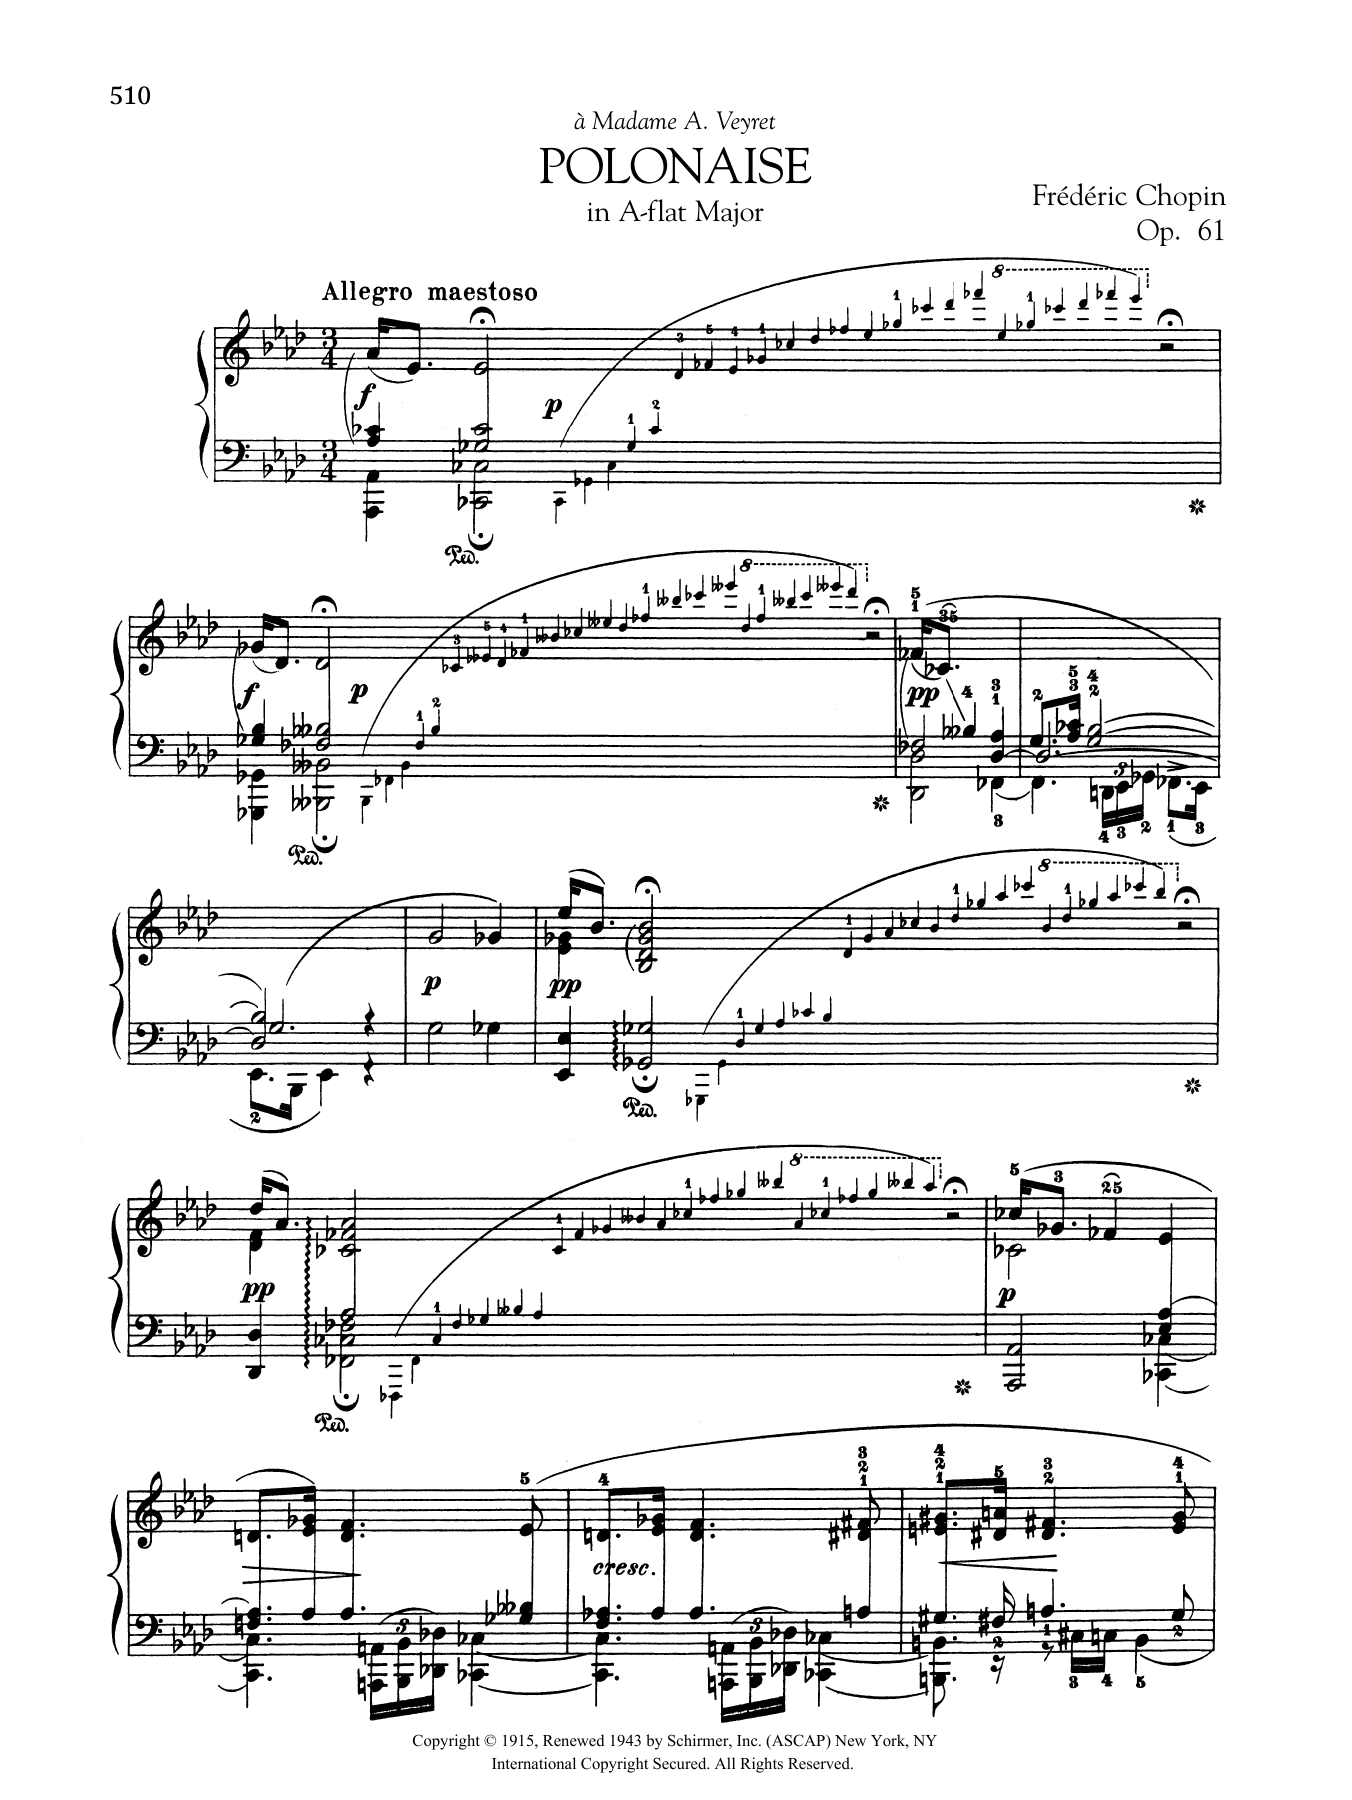 Polonaise in A-flat Major, Op. 61 Sheet Music